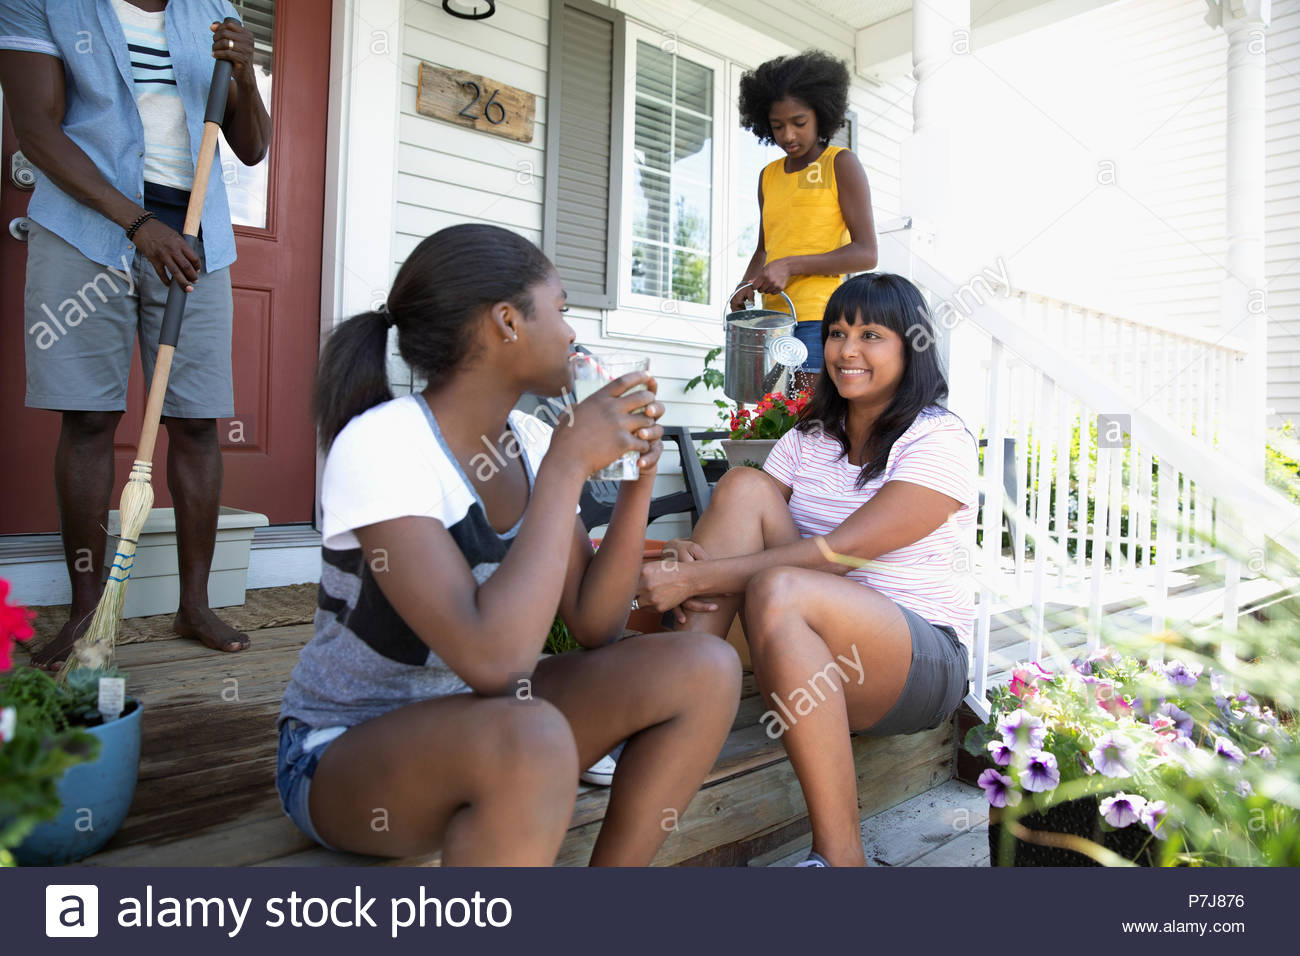 Family bonding, sweeping and watering flowers on front stoop - Stock Image